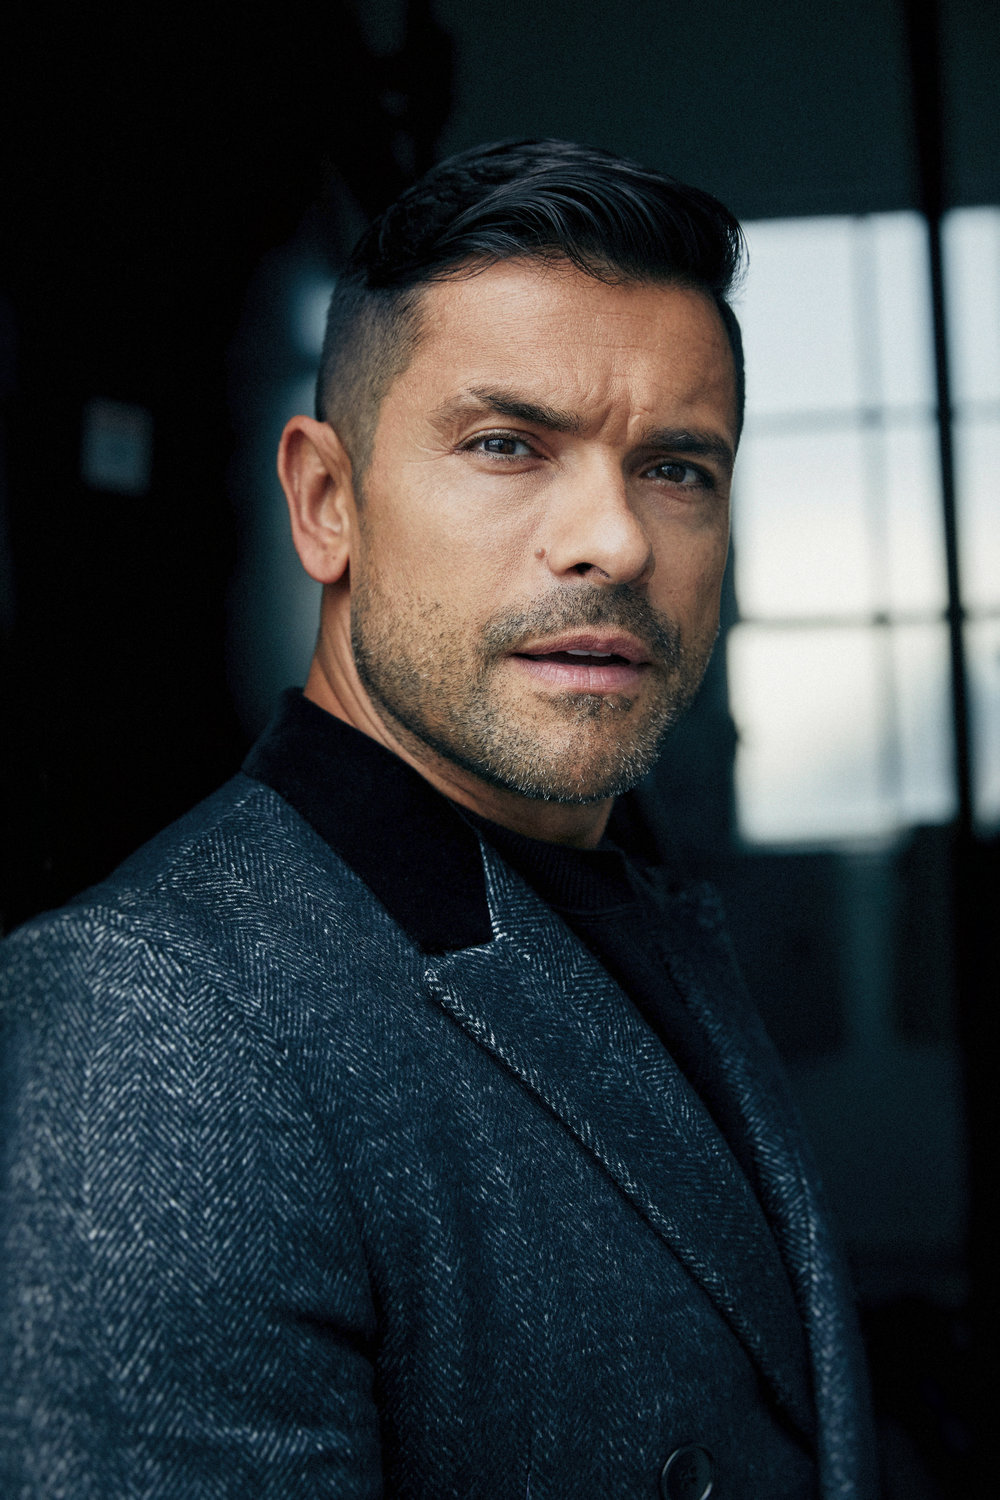 Mark_Consuelos_Nathan_Johnson_2A9A6191.jpg